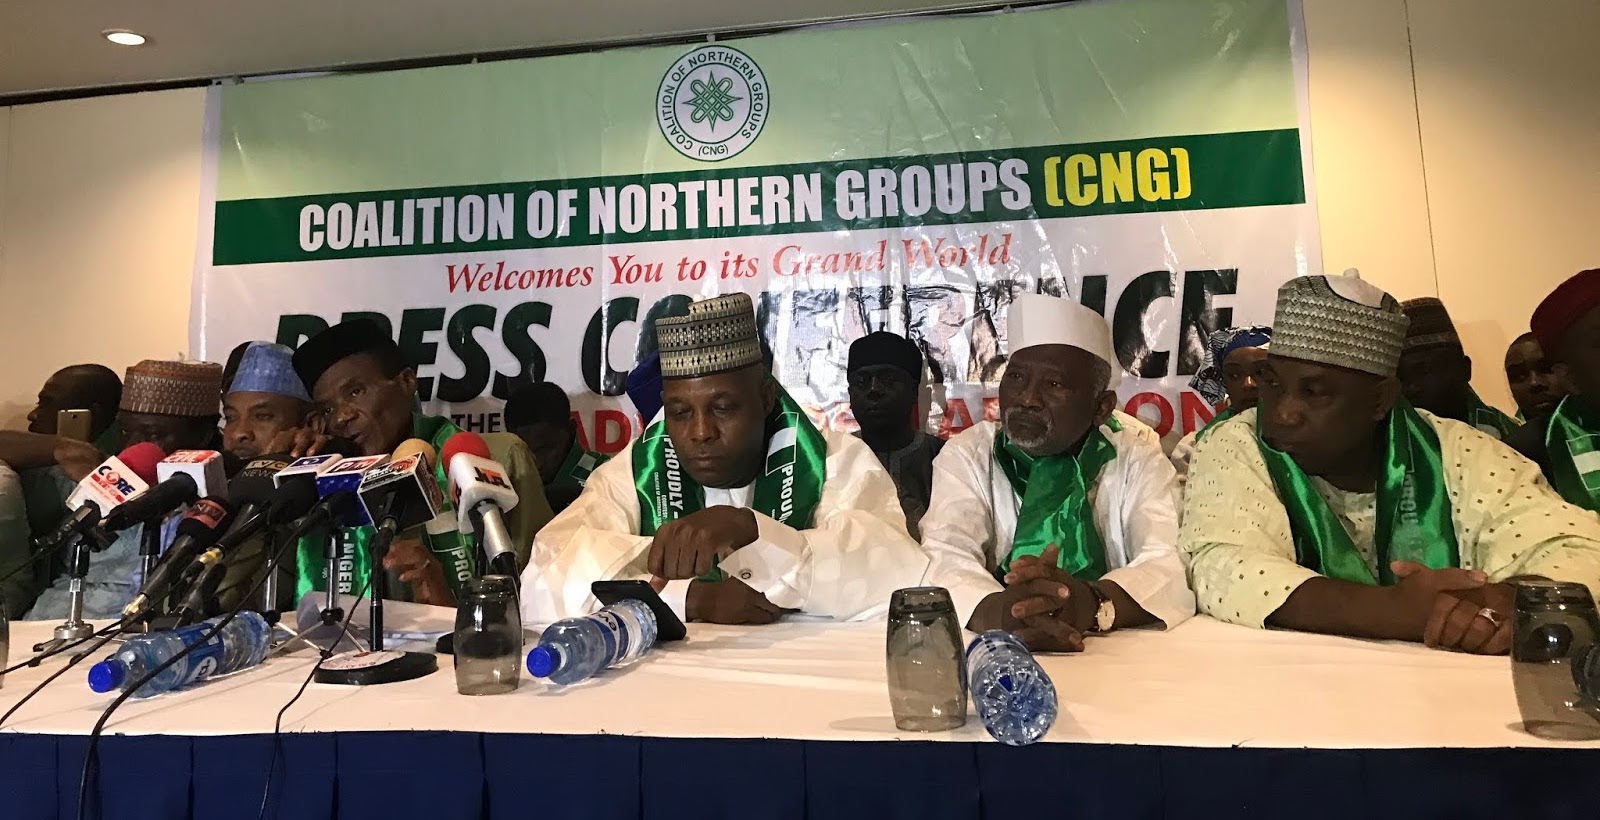 Coalition of Northern Groups (CNG).